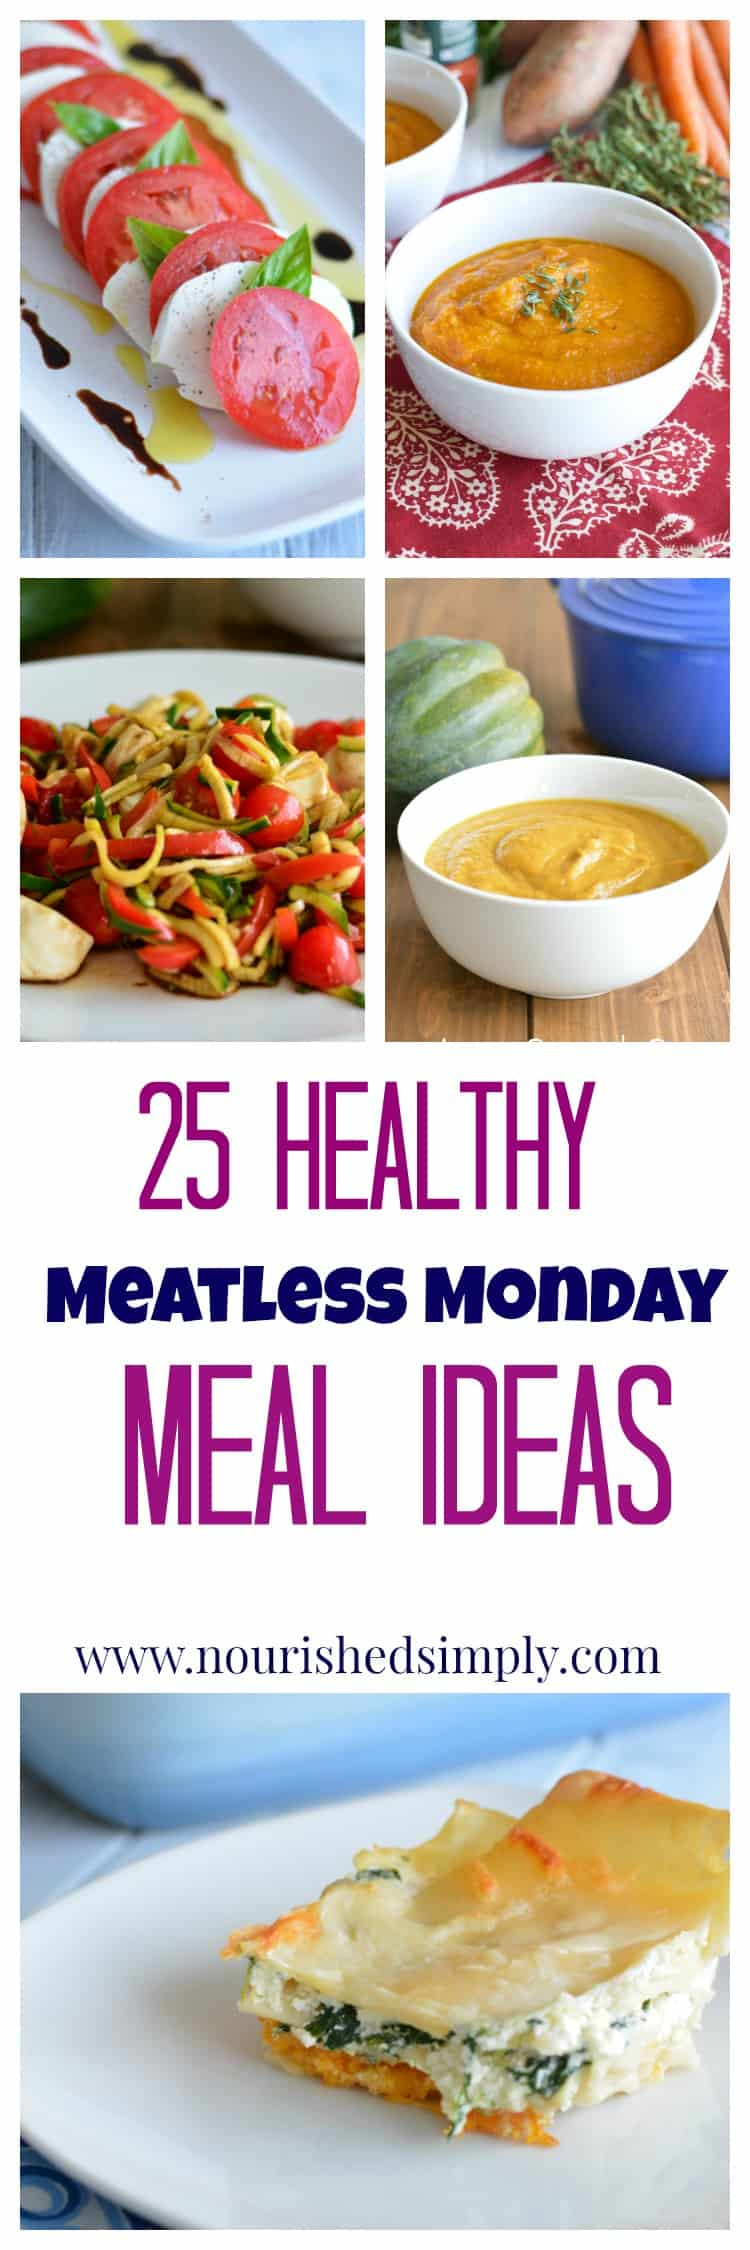 Meatless Monday Meal Ideas